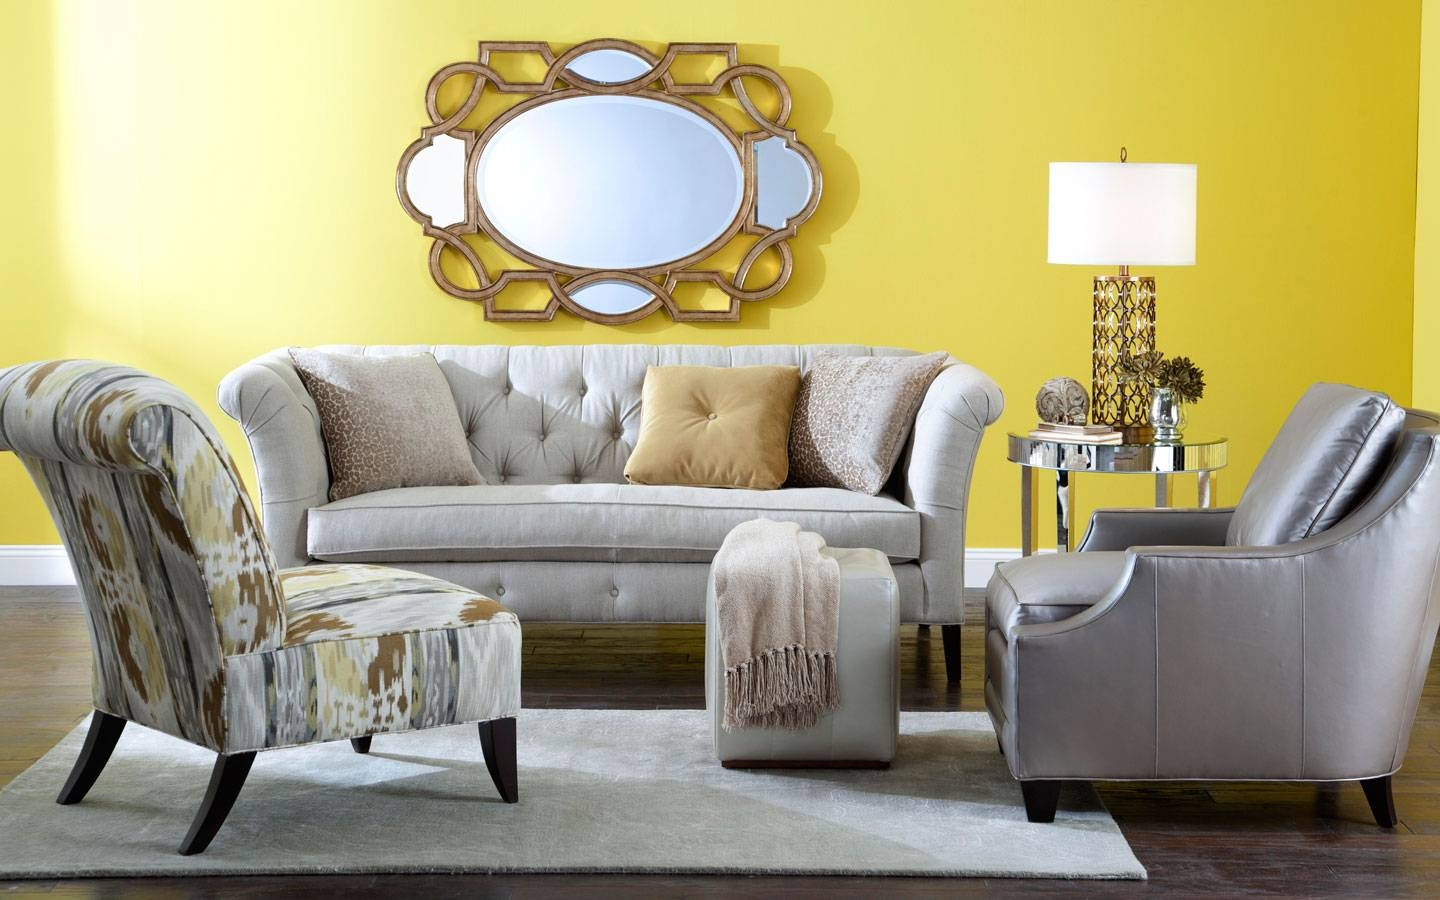 Norwalk Furniture ~ Home & Interior Design with Norwalk Sofa and Chairs (Image 19 of 30)